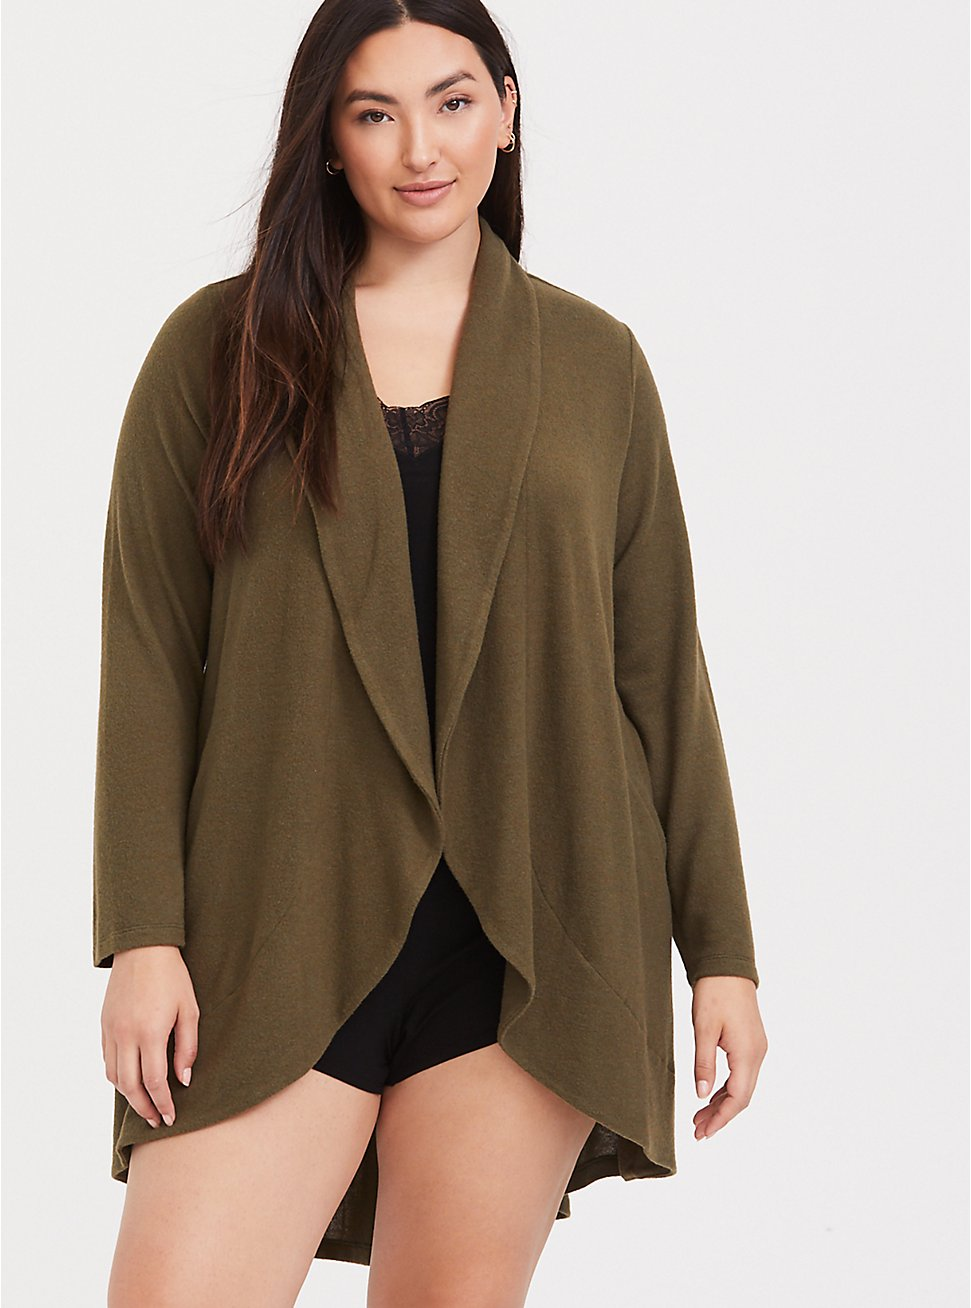 Plus Size Olive Green Shawl Collar Sleep Cardigan, OLIVE, hi-res